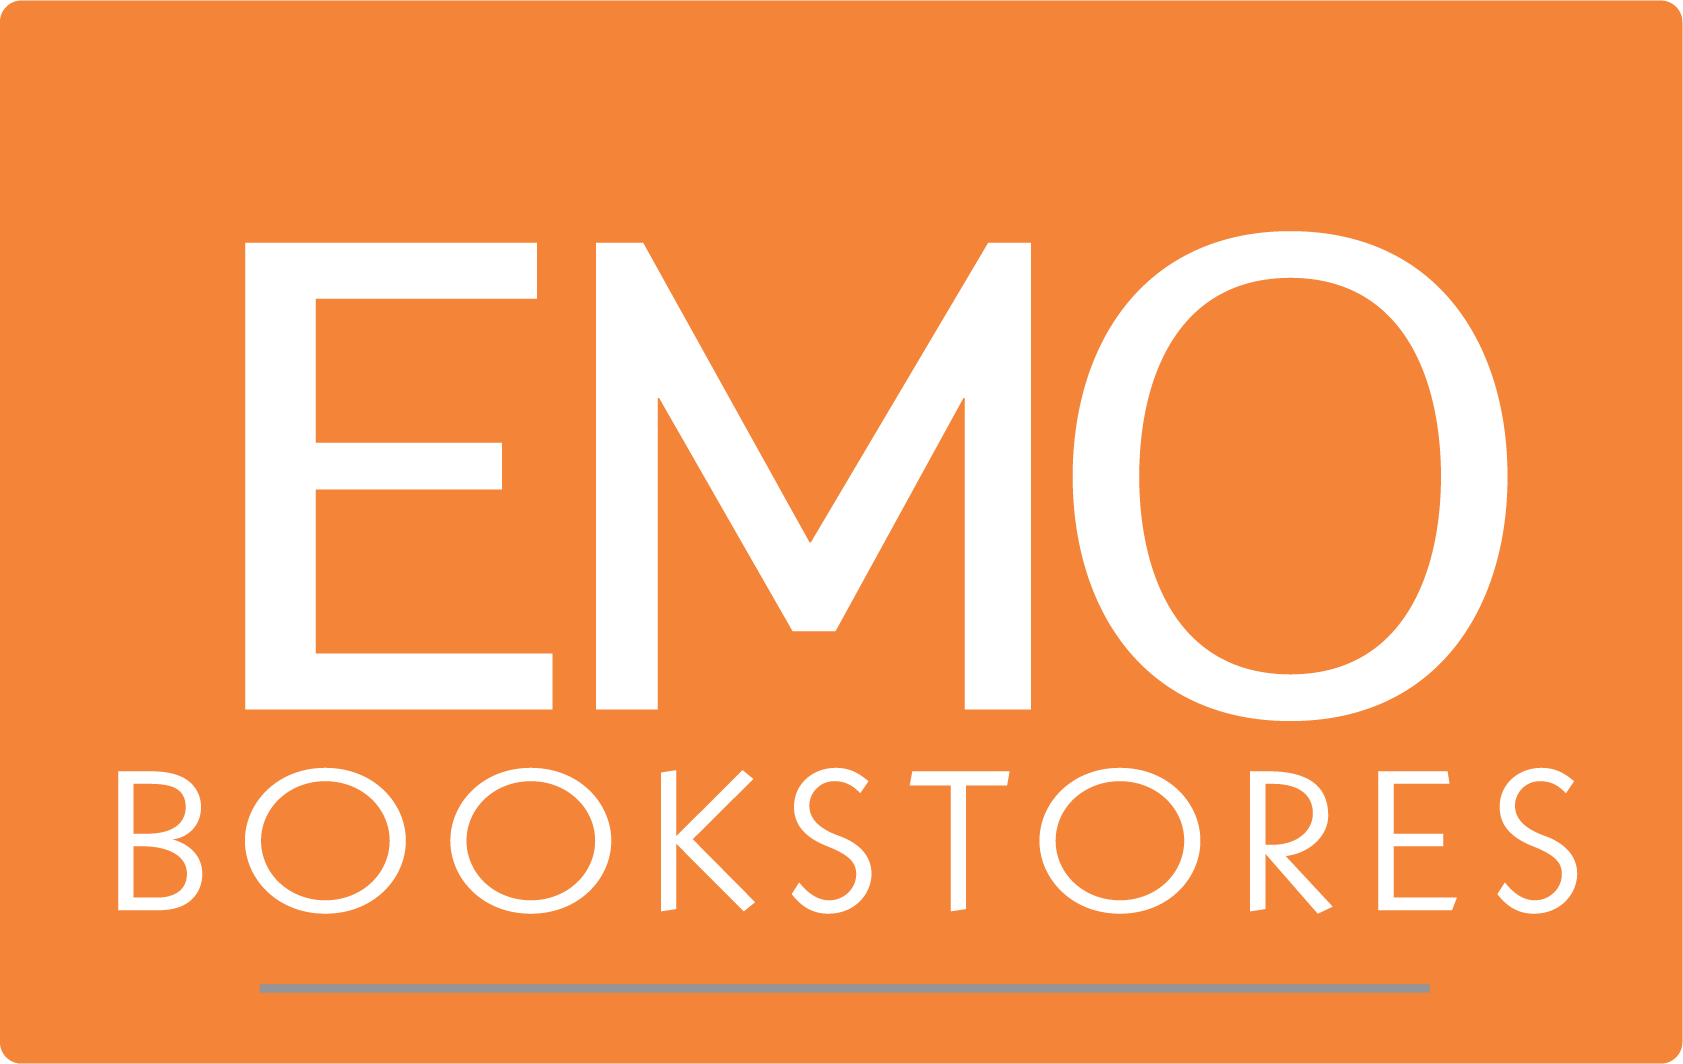 EMOBOOKS.com - TEXTBOOKS for students from Year 1 - 9, IGCSE, A Levels and University